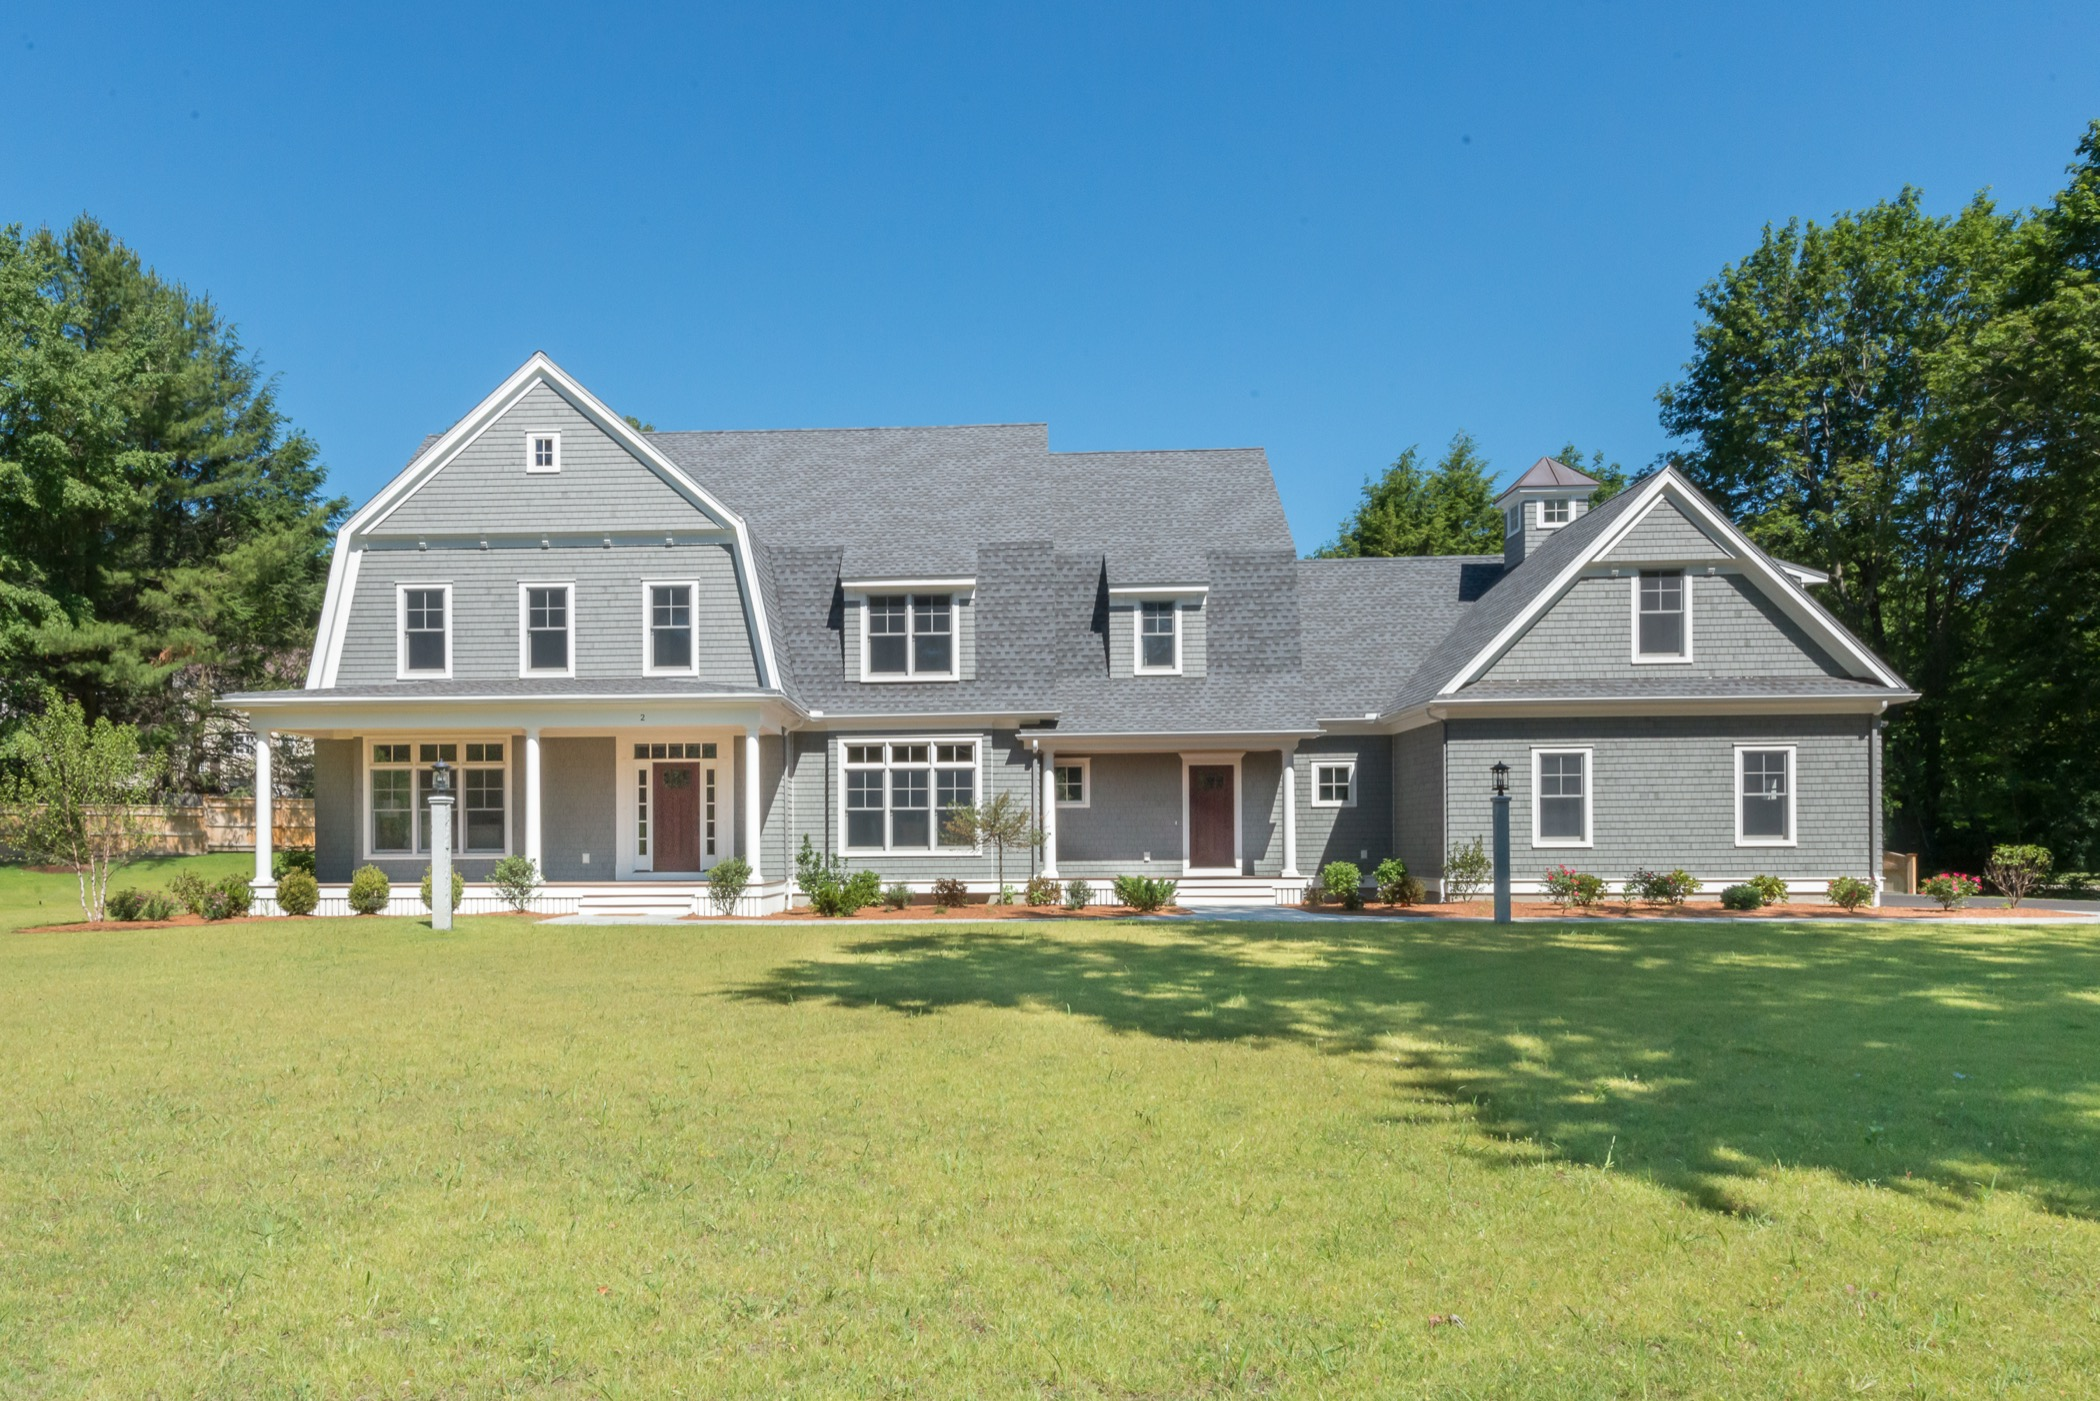 Casa Unifamiliar por un Venta en New Nantucket-Style Shingle Home 2 Burnham Road Lexington, Massachusetts, 02420 Estados Unidos